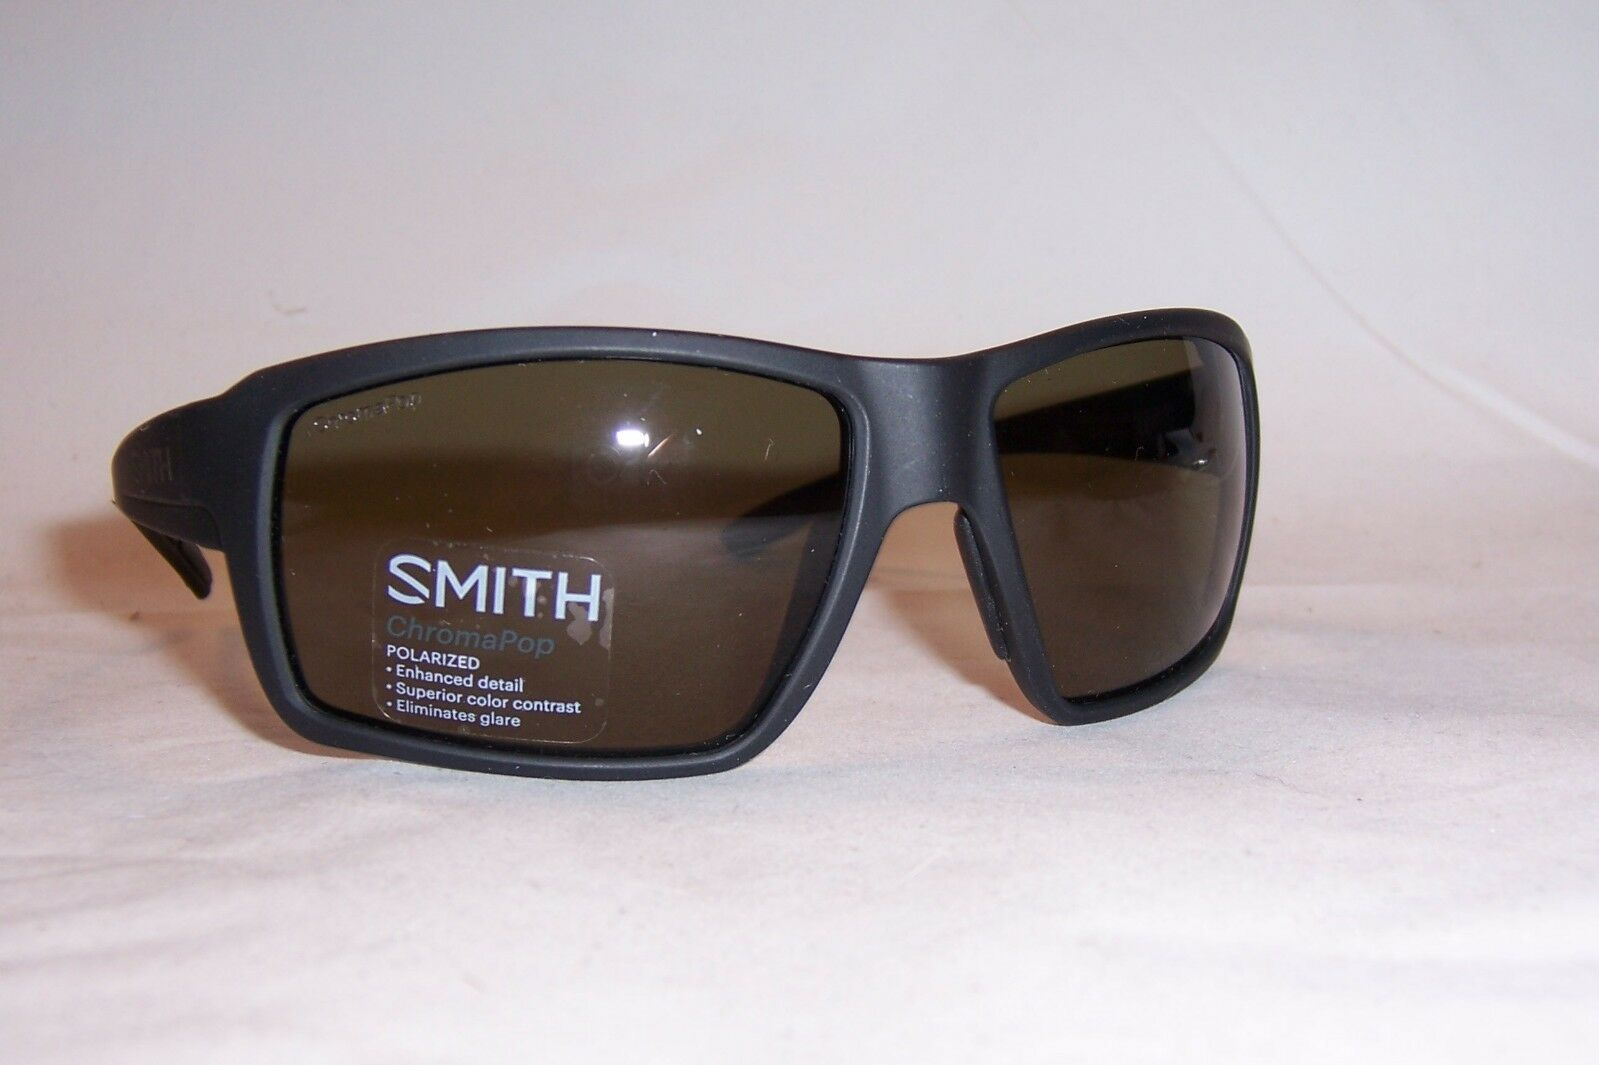 3158670e4f Smith Sunglasses Guides Choice Dl5 Black chromapop Gray Green ...